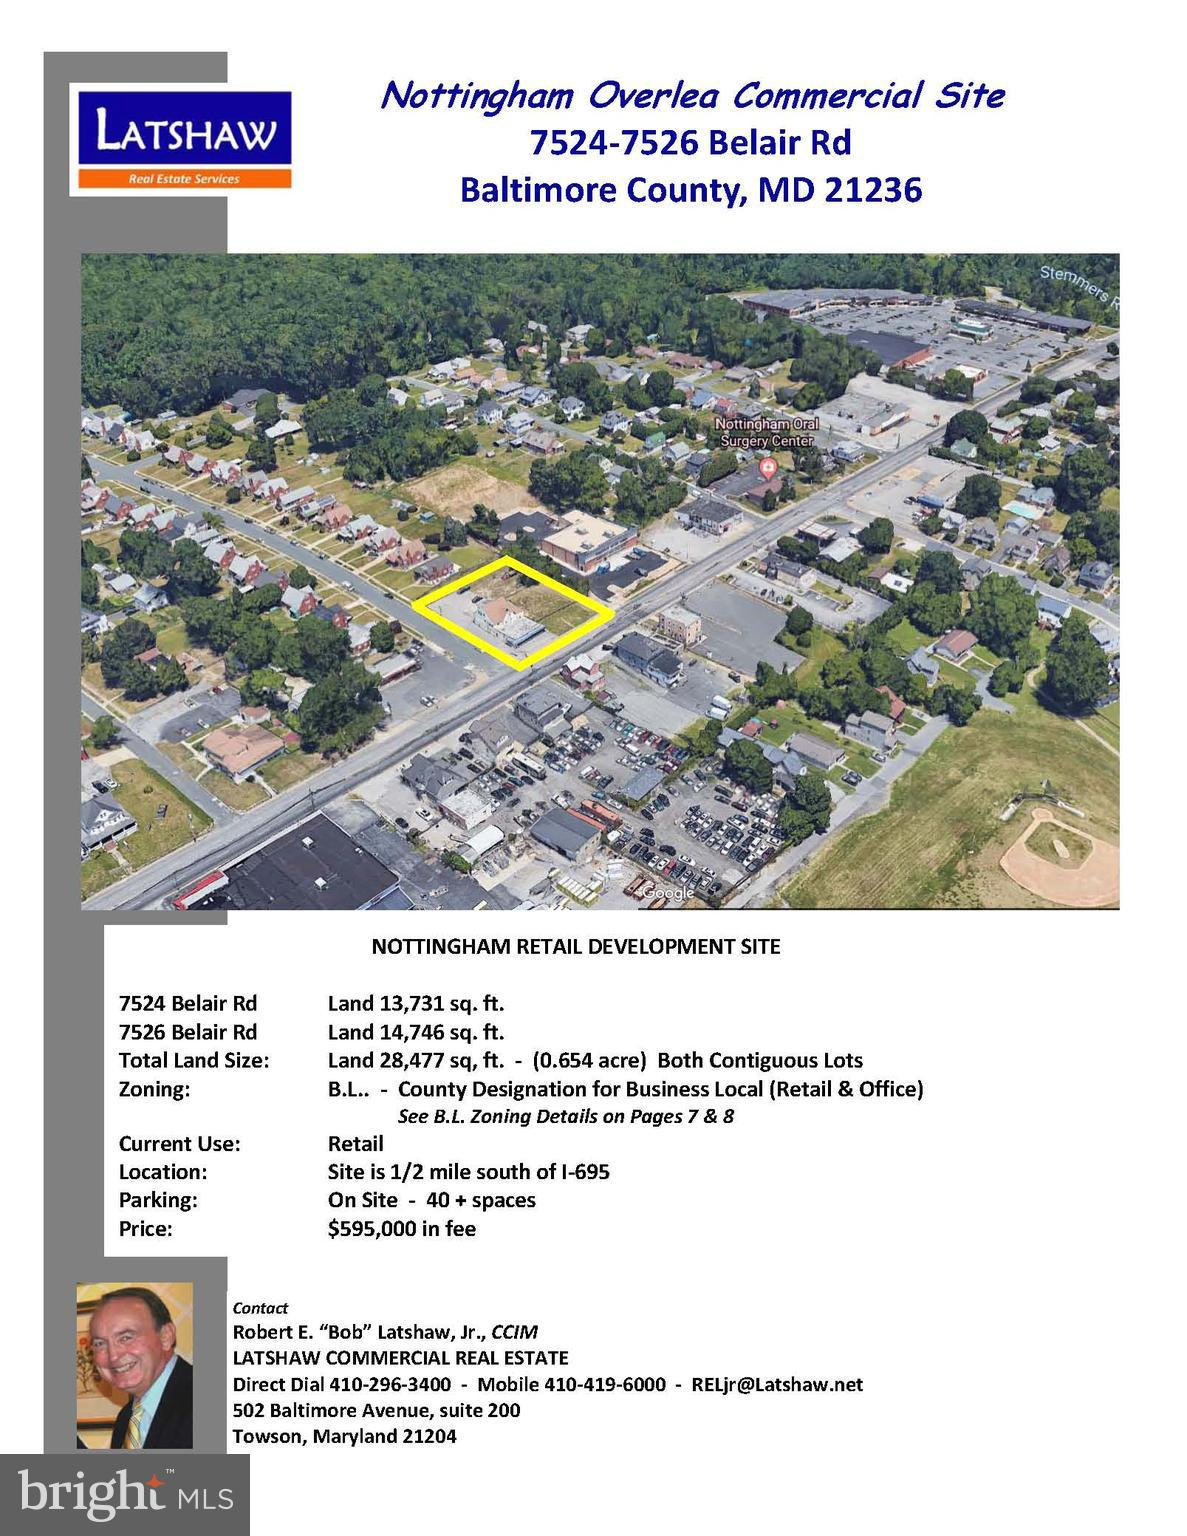 7524-7526 BELAIR ROAD, BALTIMORE, MD 21236